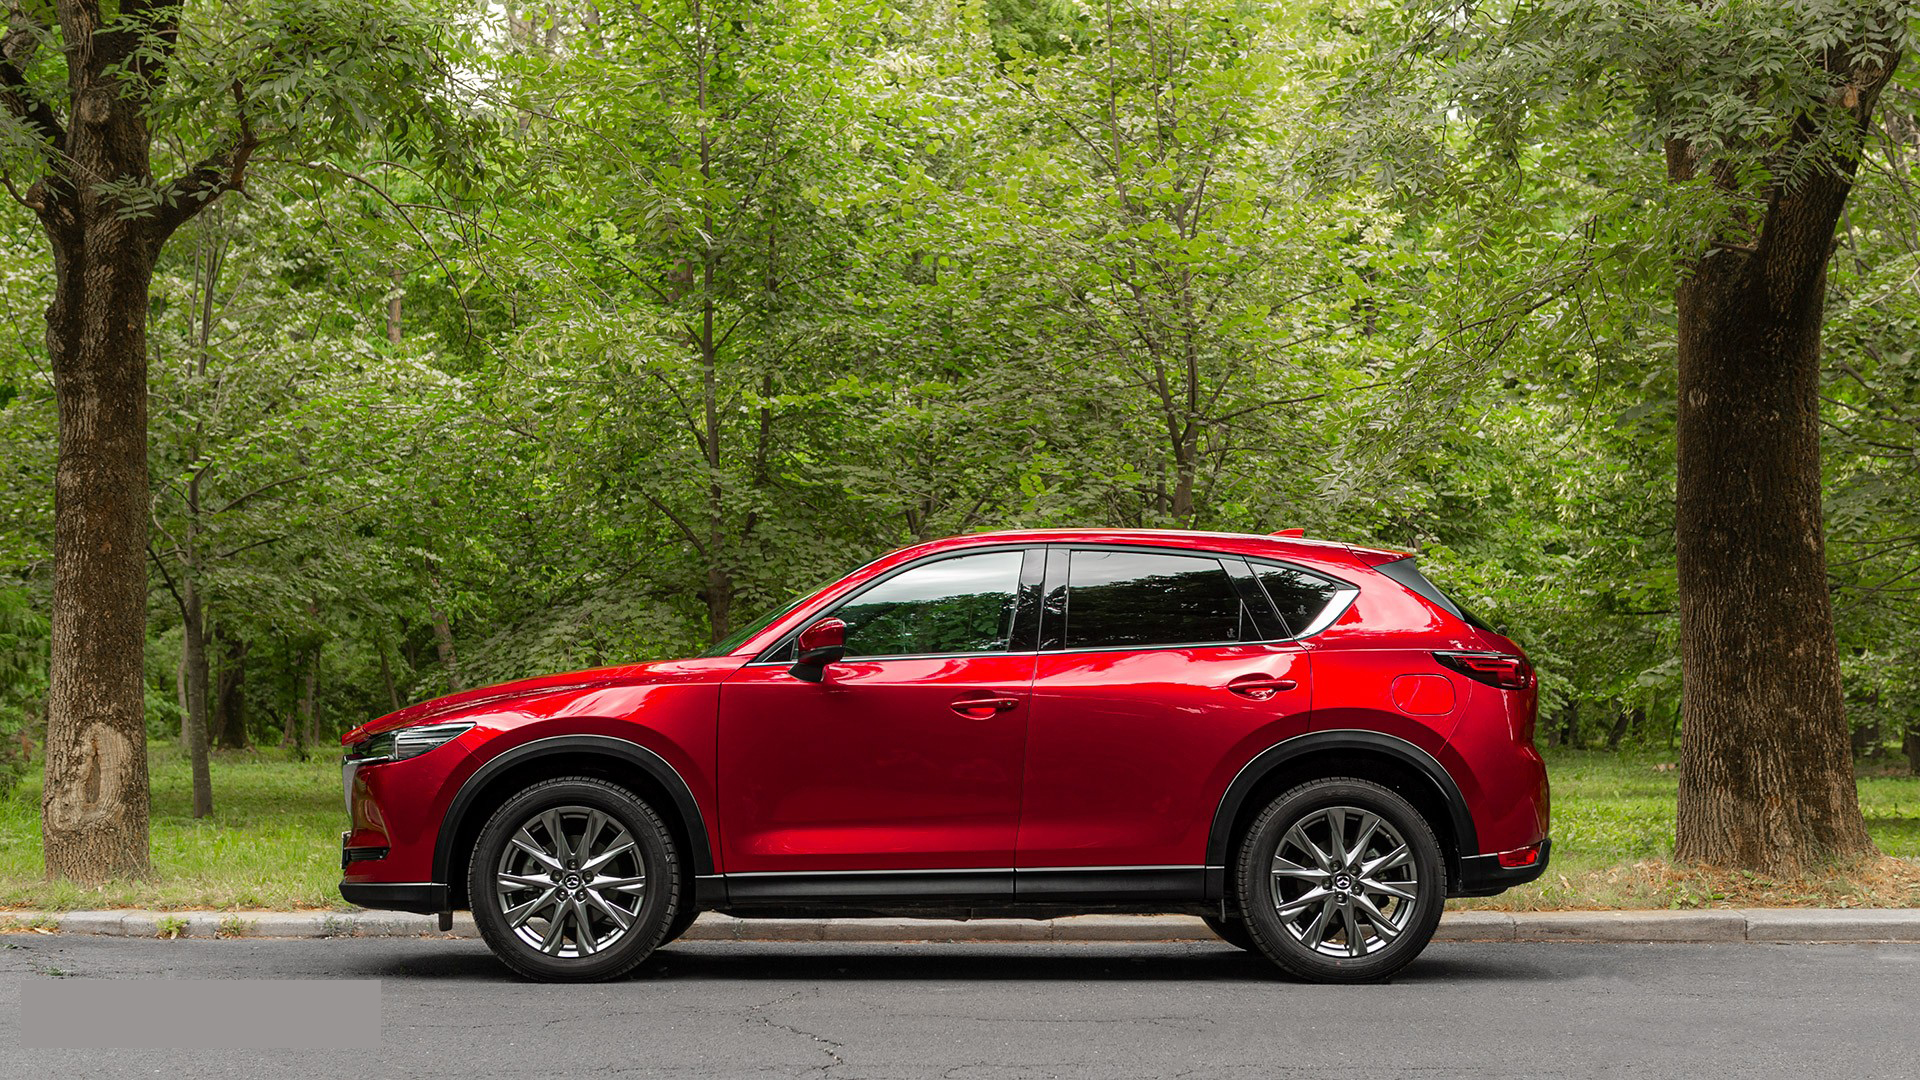 2022 Mazda Cx 5 Price Review Transmission Touring